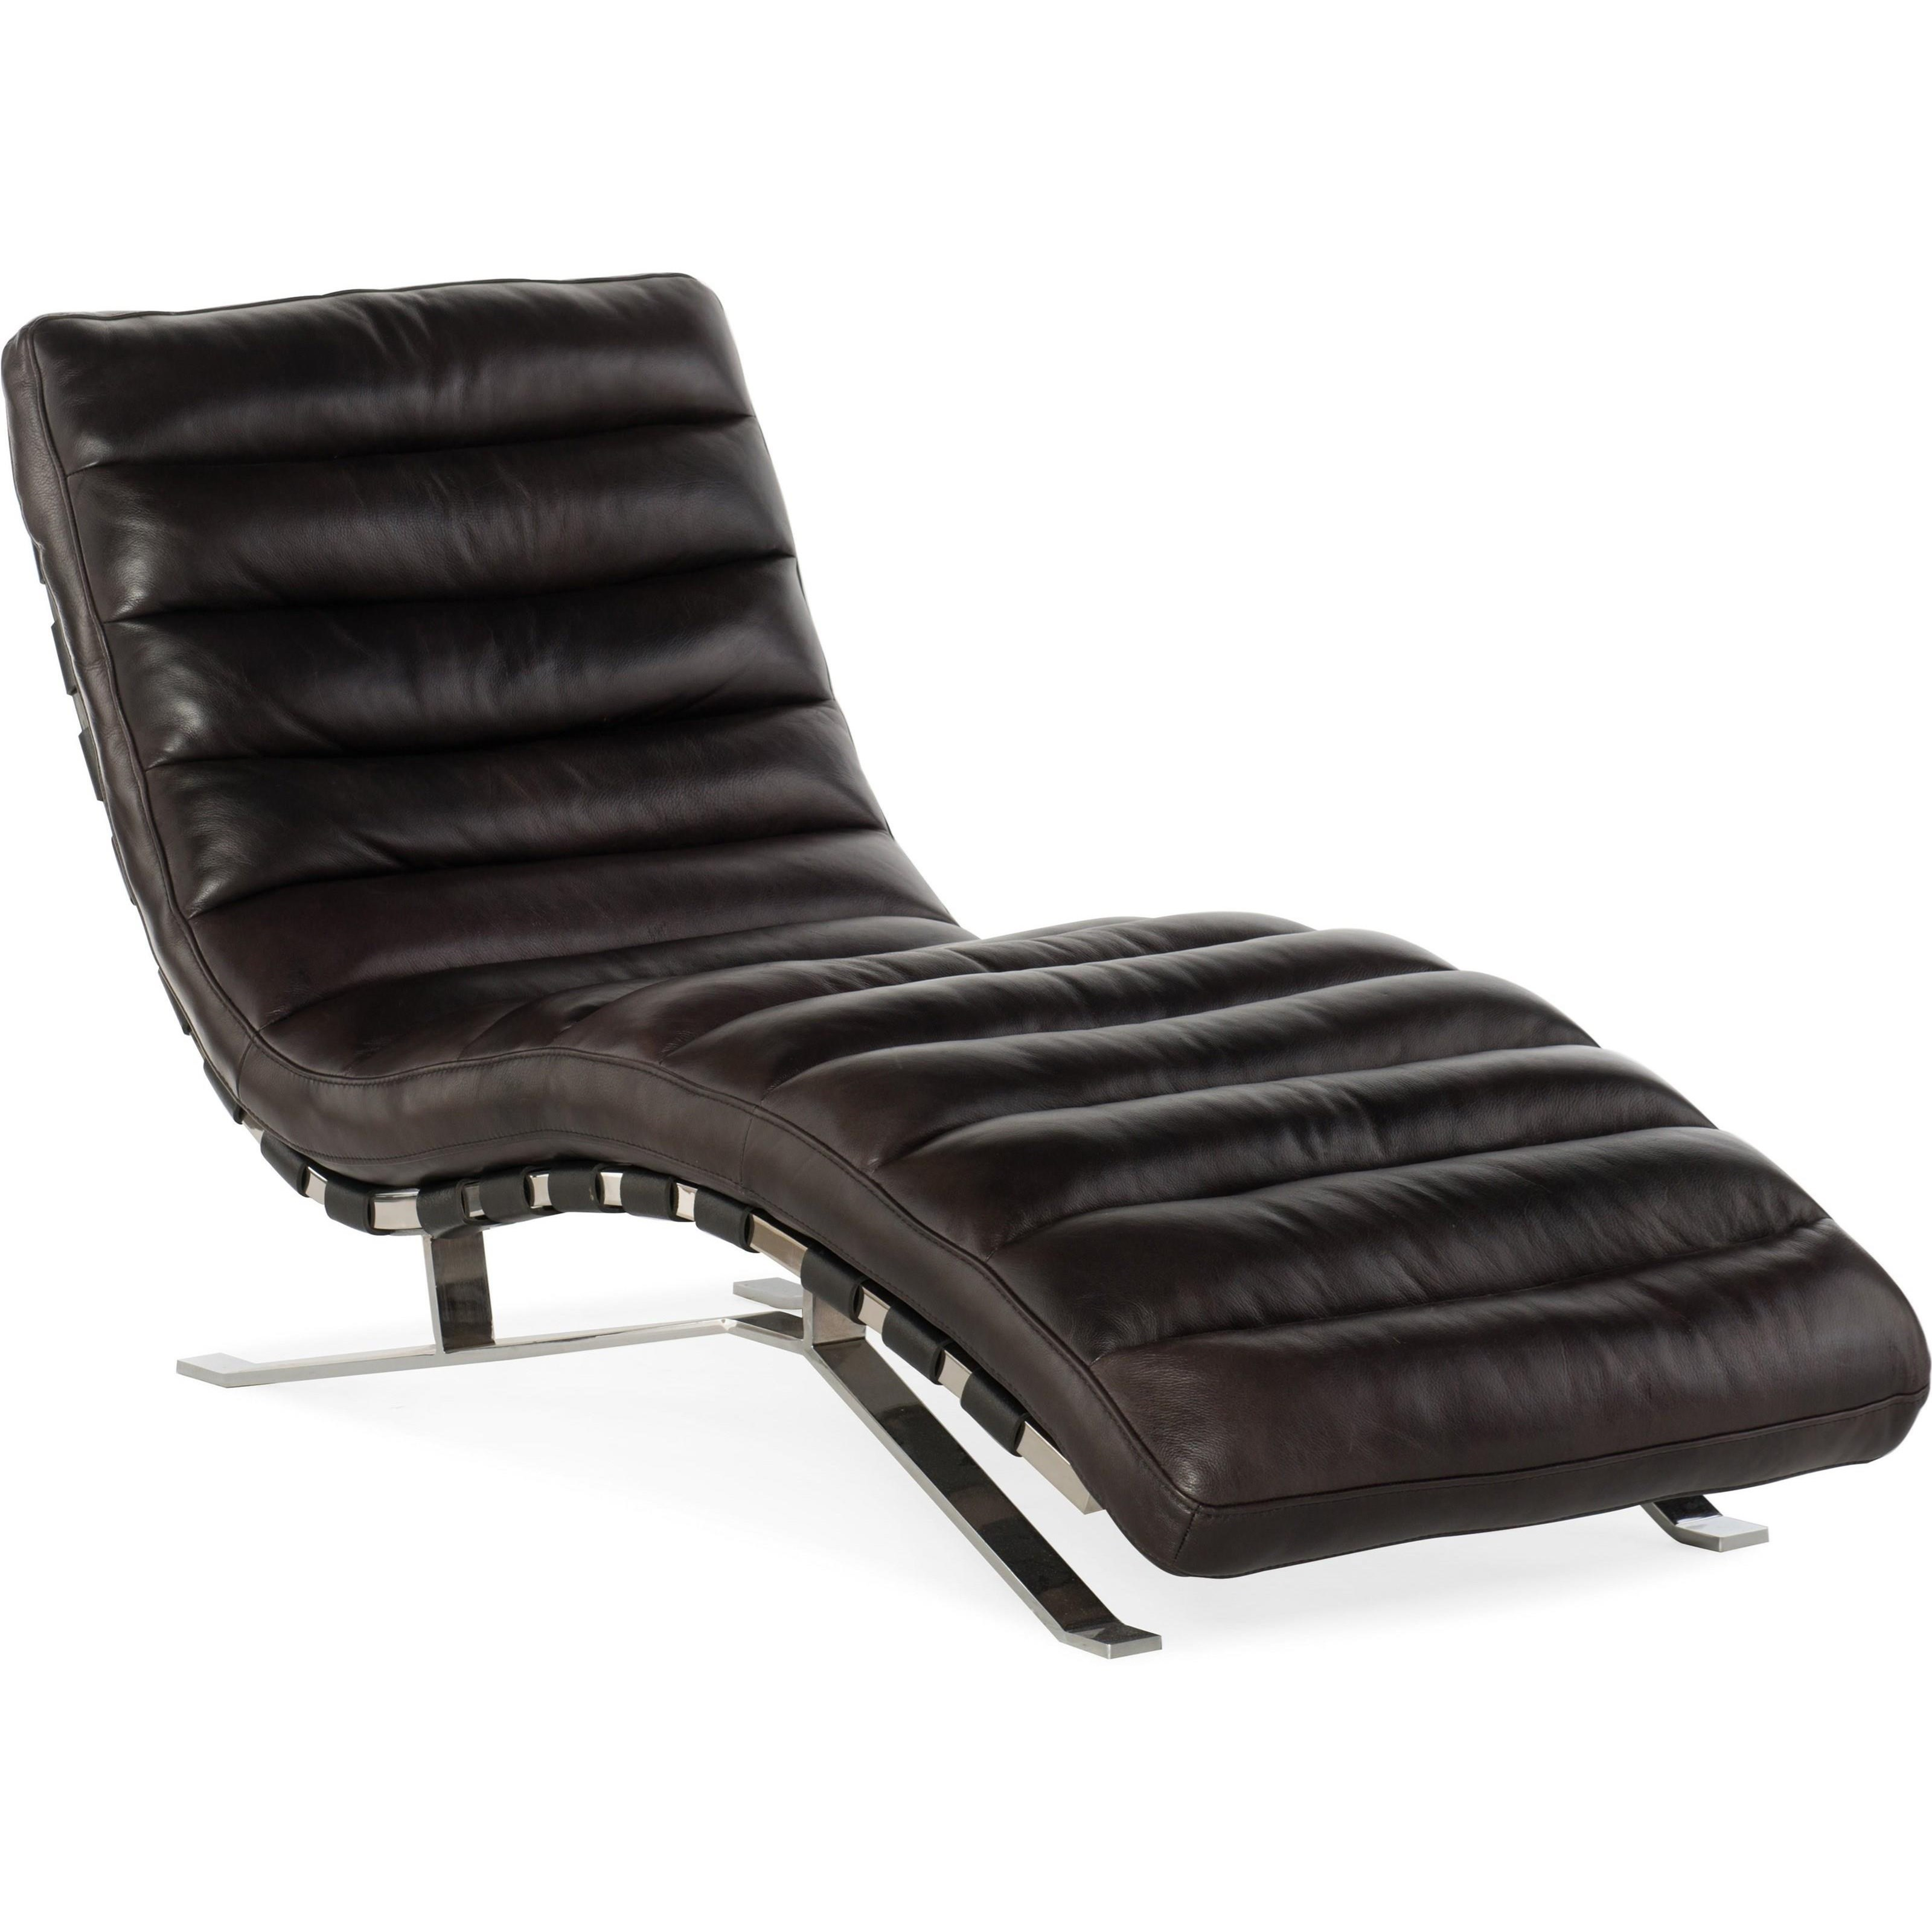 Caddock Chaise without Arm by Hooker Furniture at Miller Waldrop Furniture and Decor